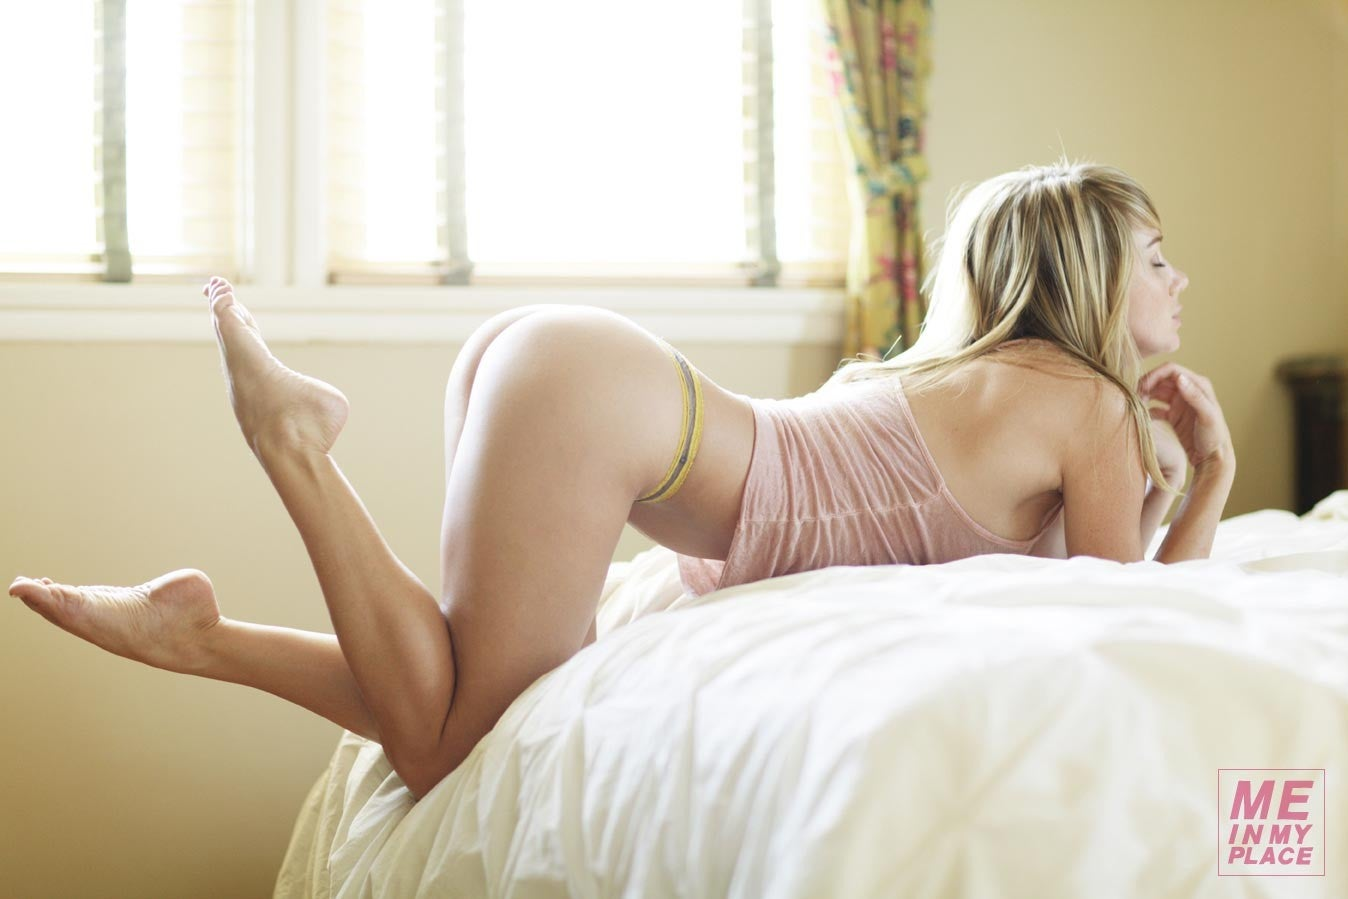 sara jean underwood - me in my place - esquire - outtakes-09